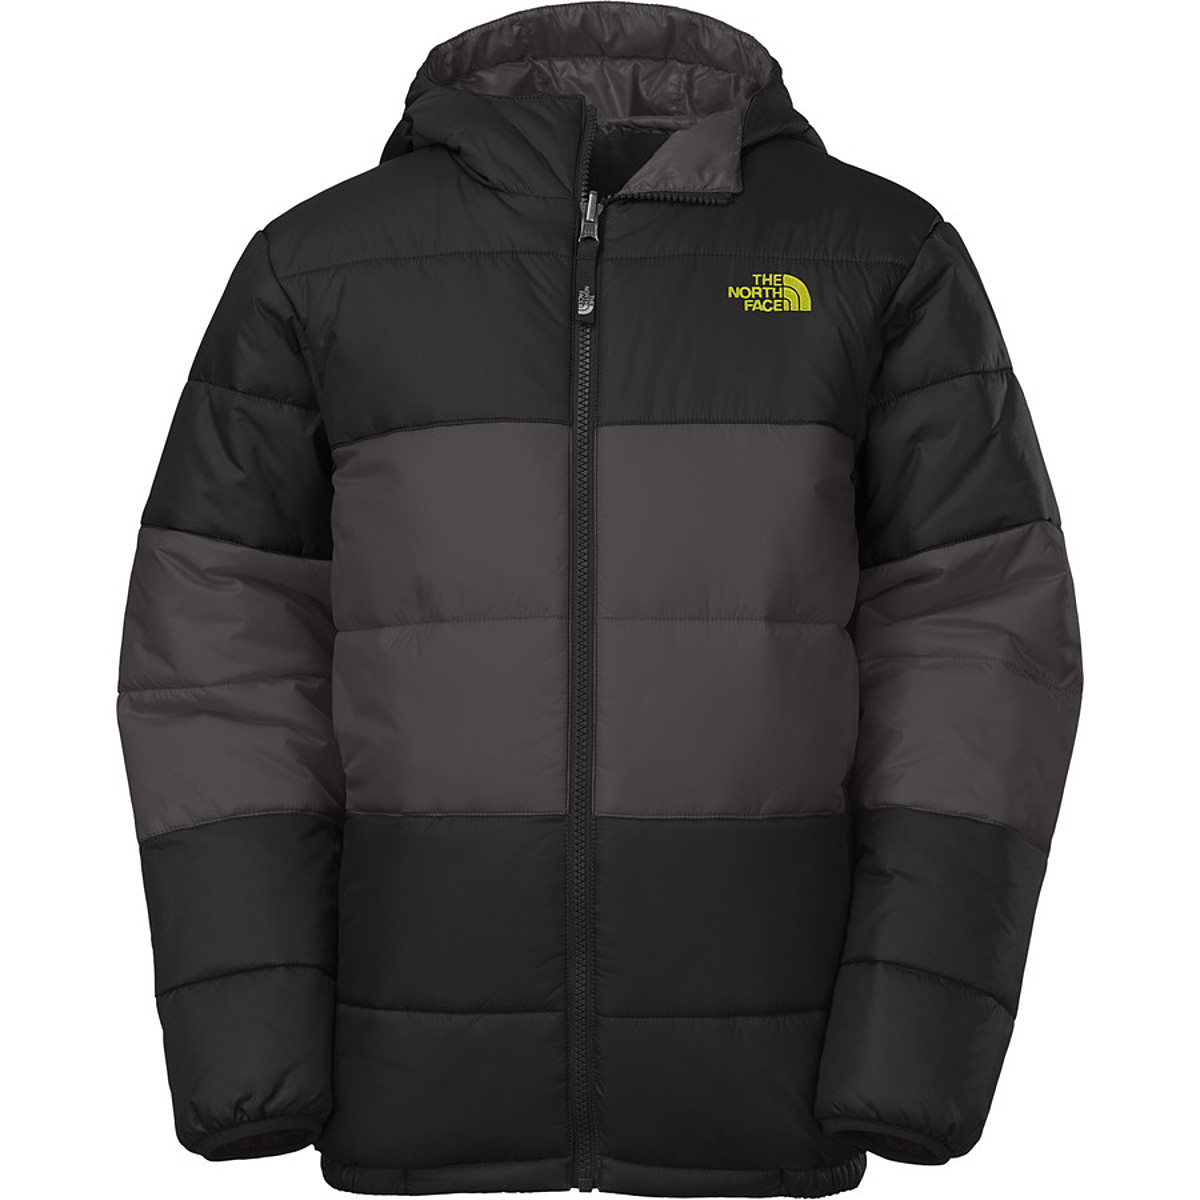 The North Face Reversible JW Jacket